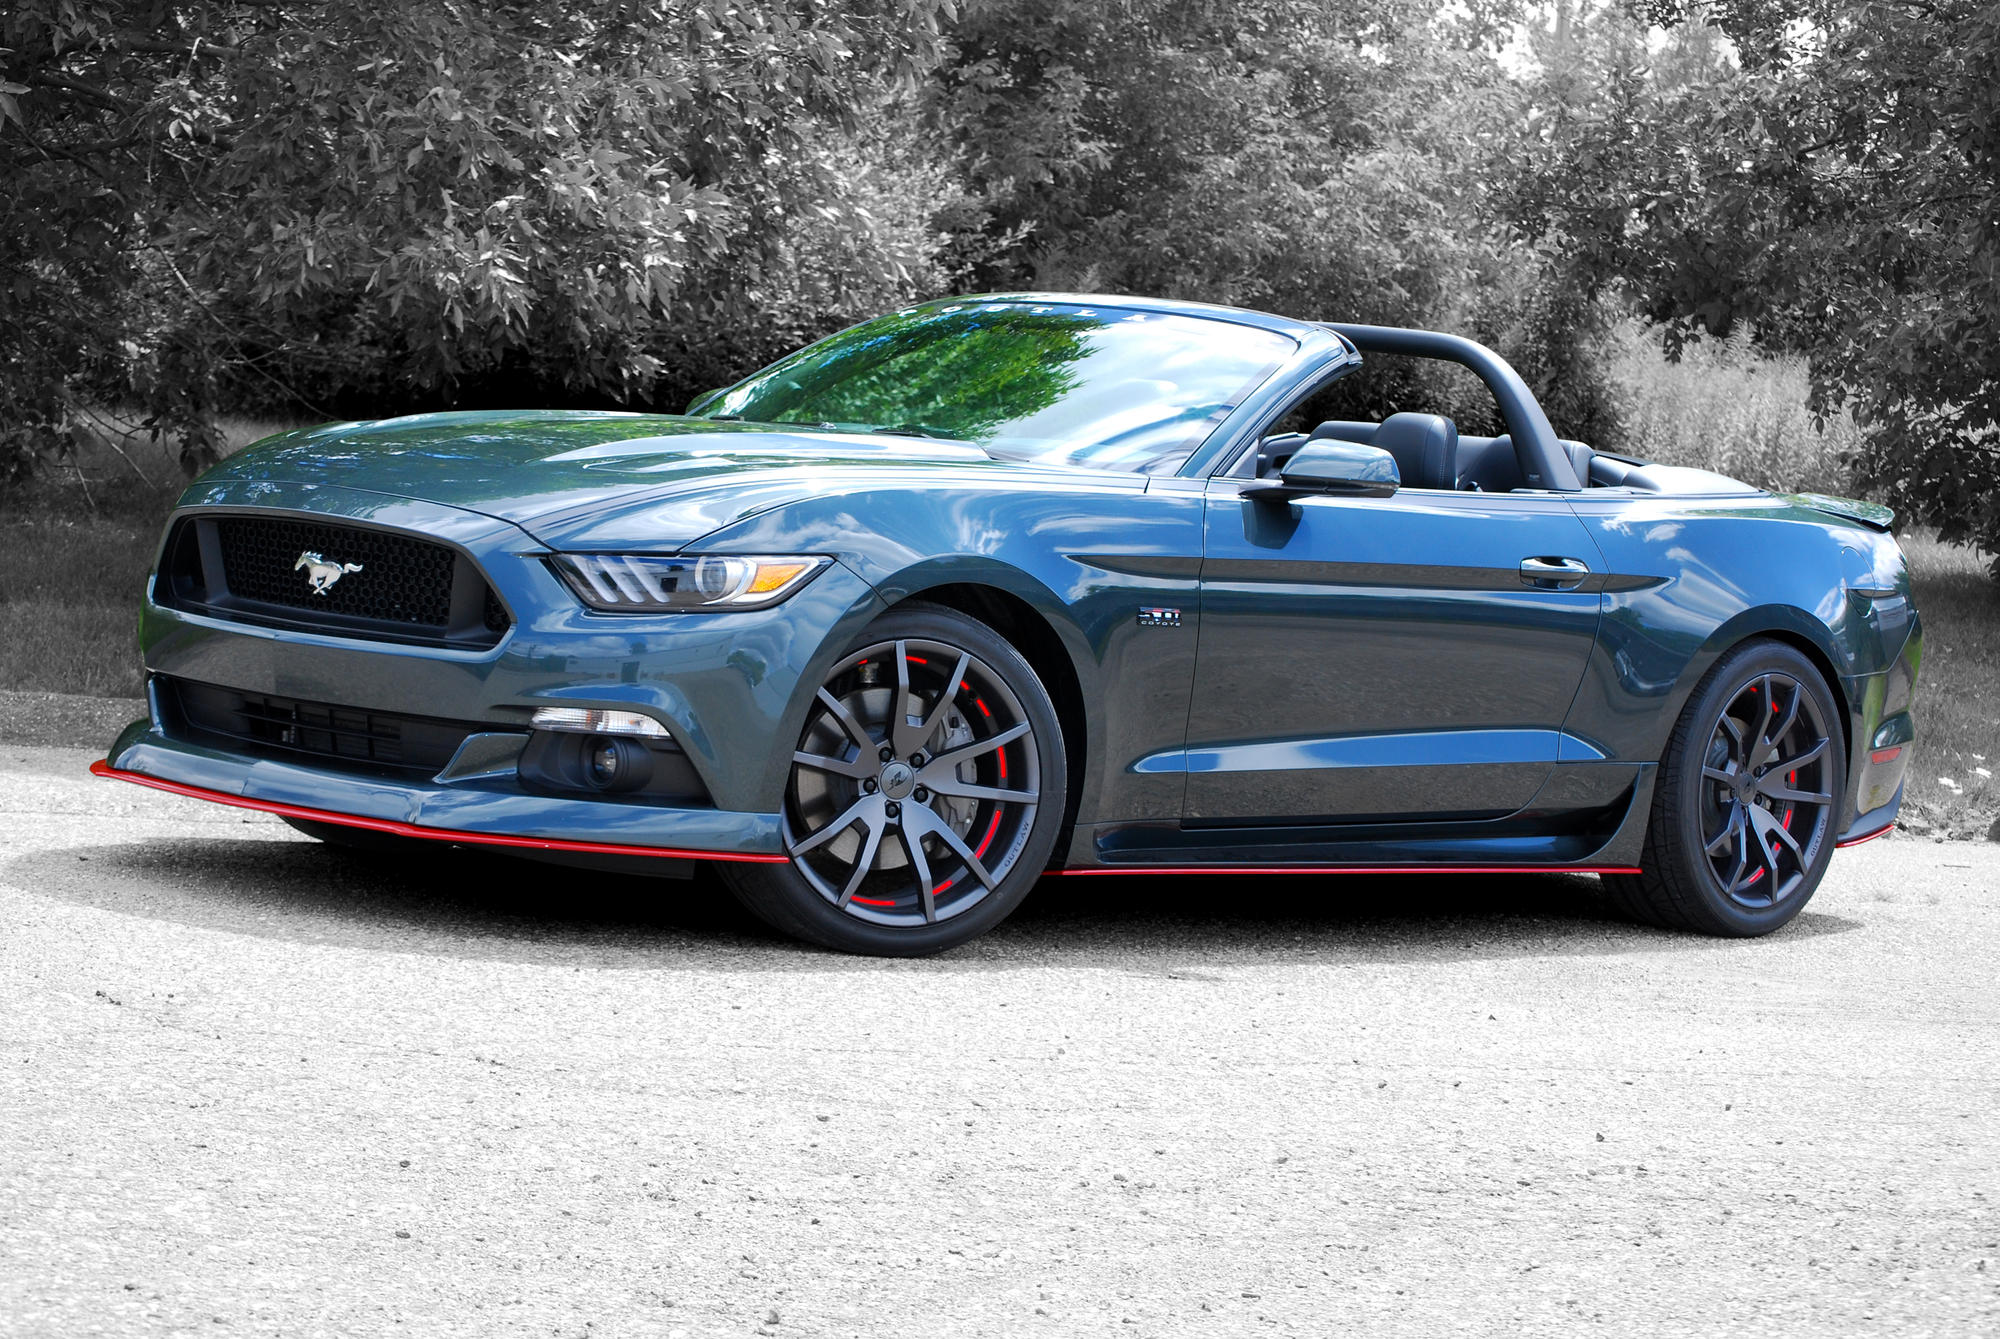 Outlaw lightbar autoware the cdc classic lightbar fits the 2015 17 mustang convertibles aloadofball Images